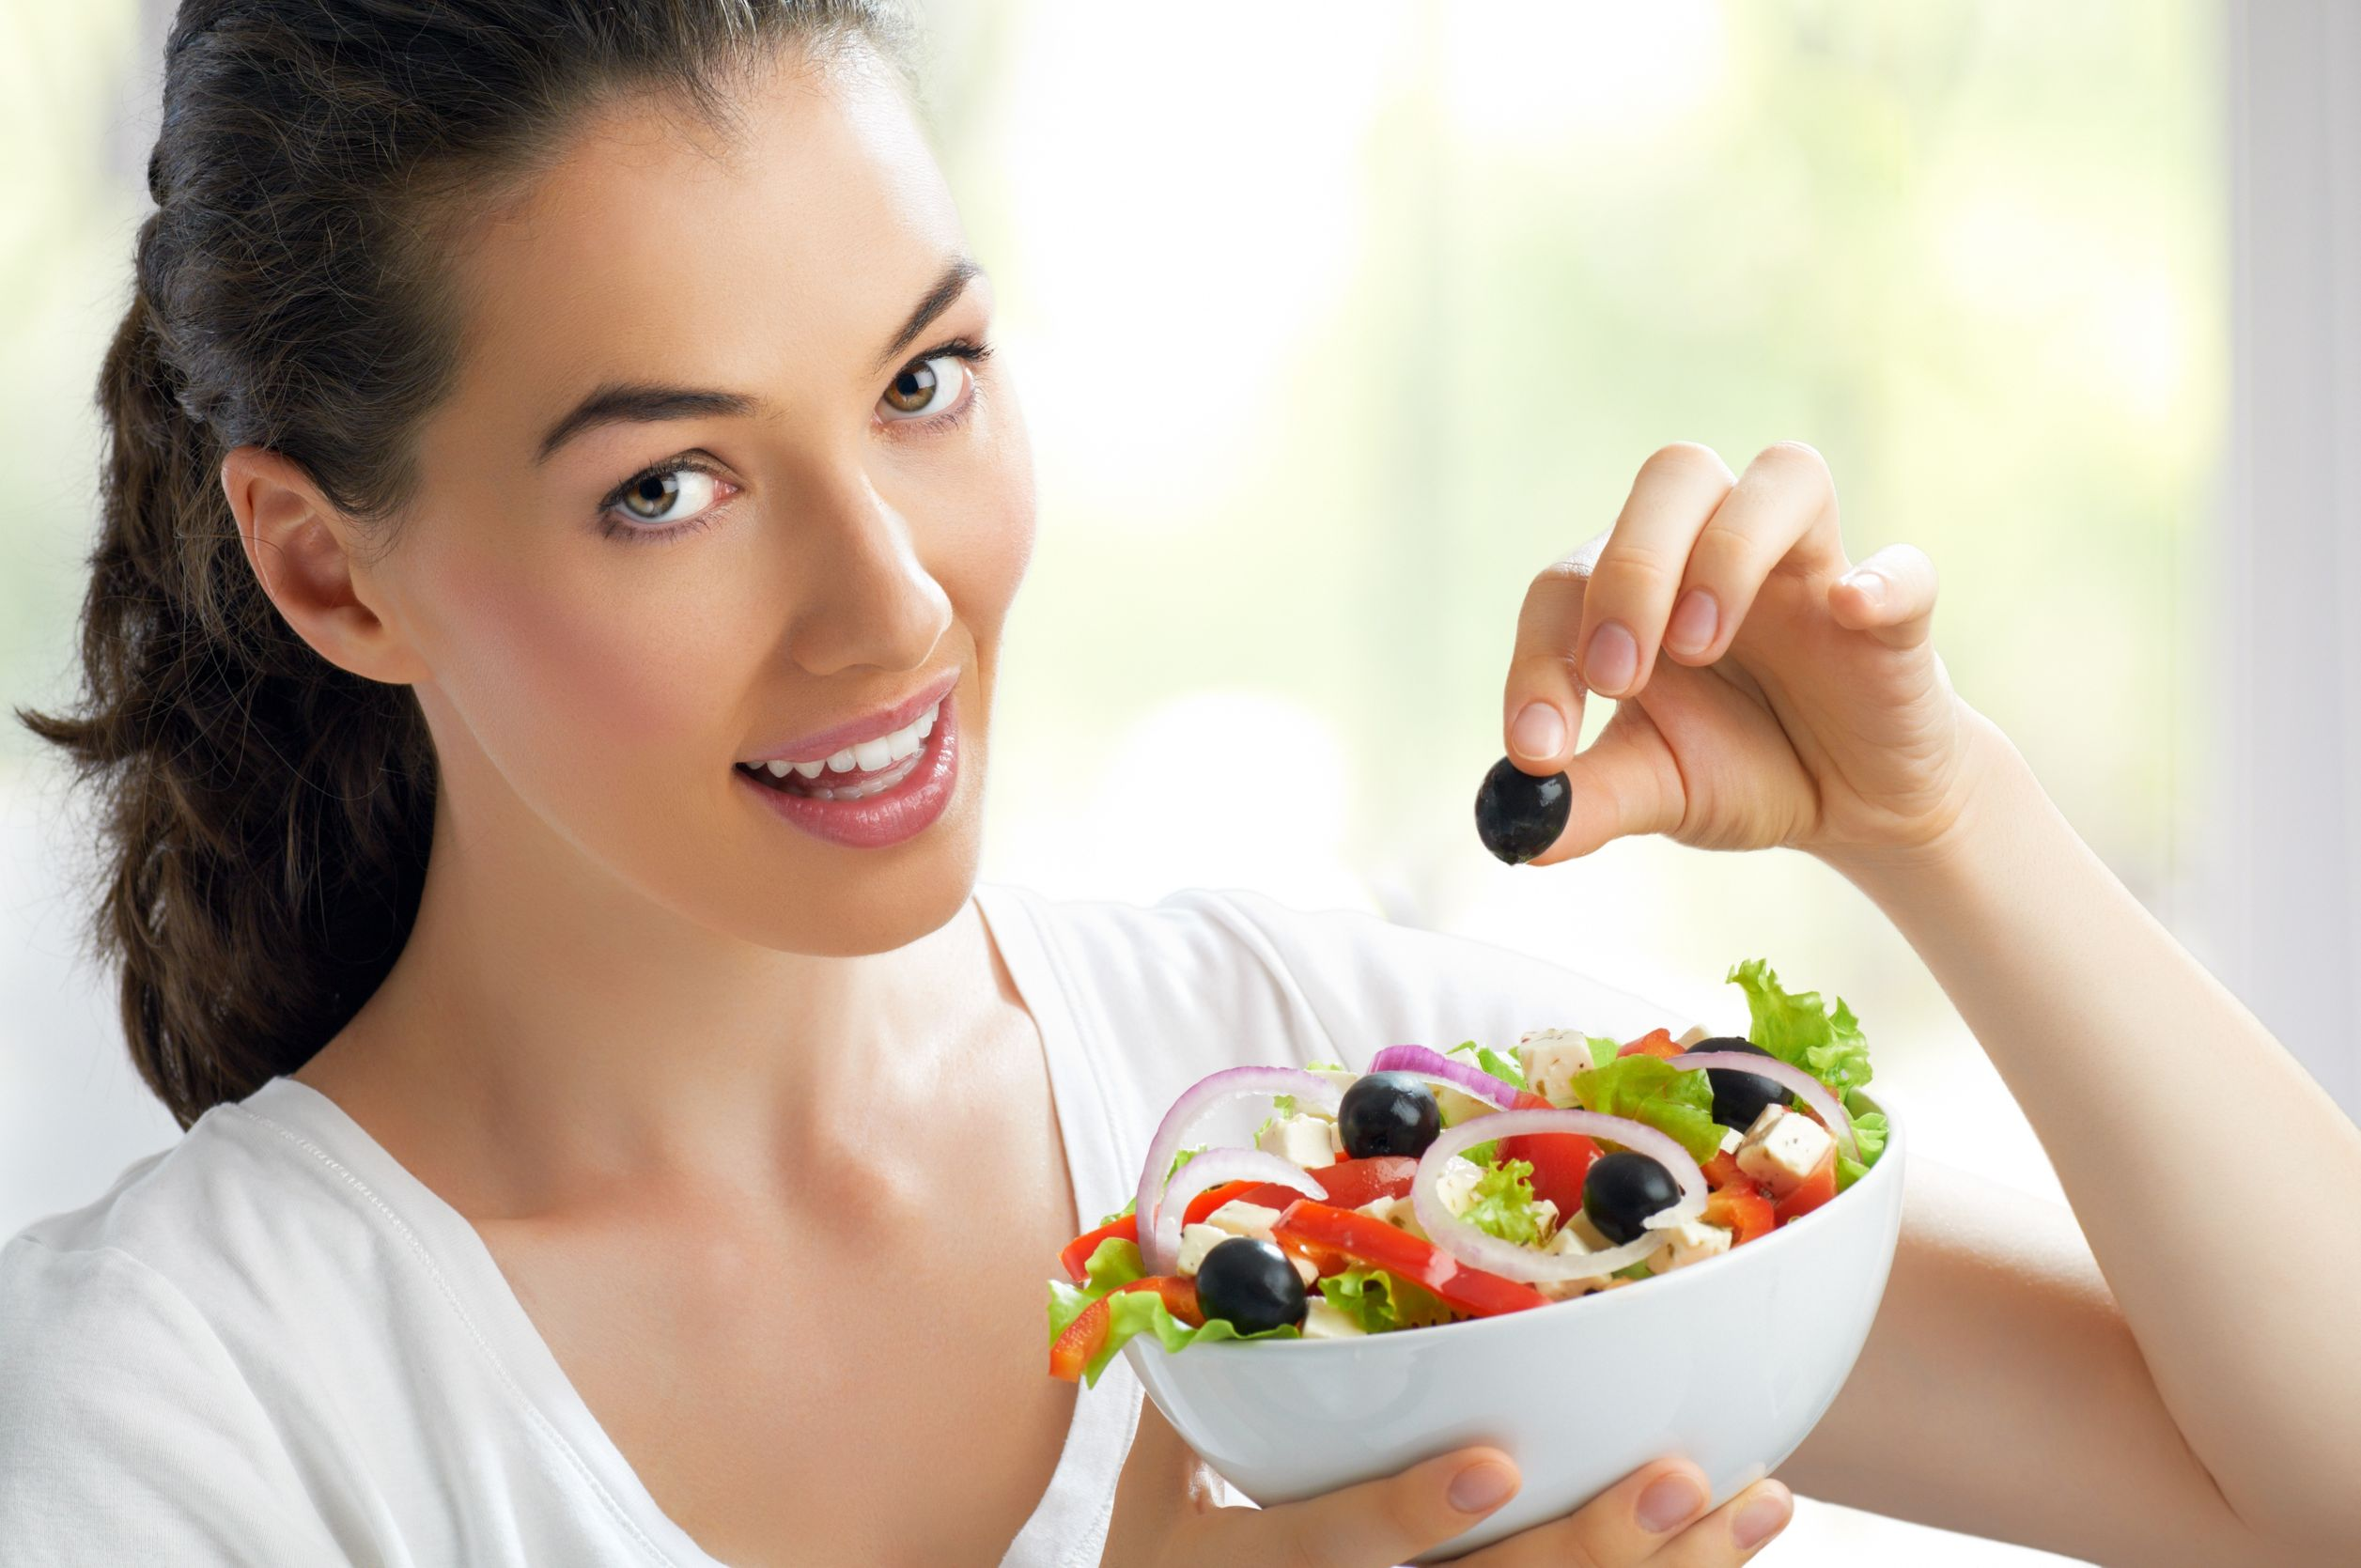 eat healthy - Prevent Hair Loss